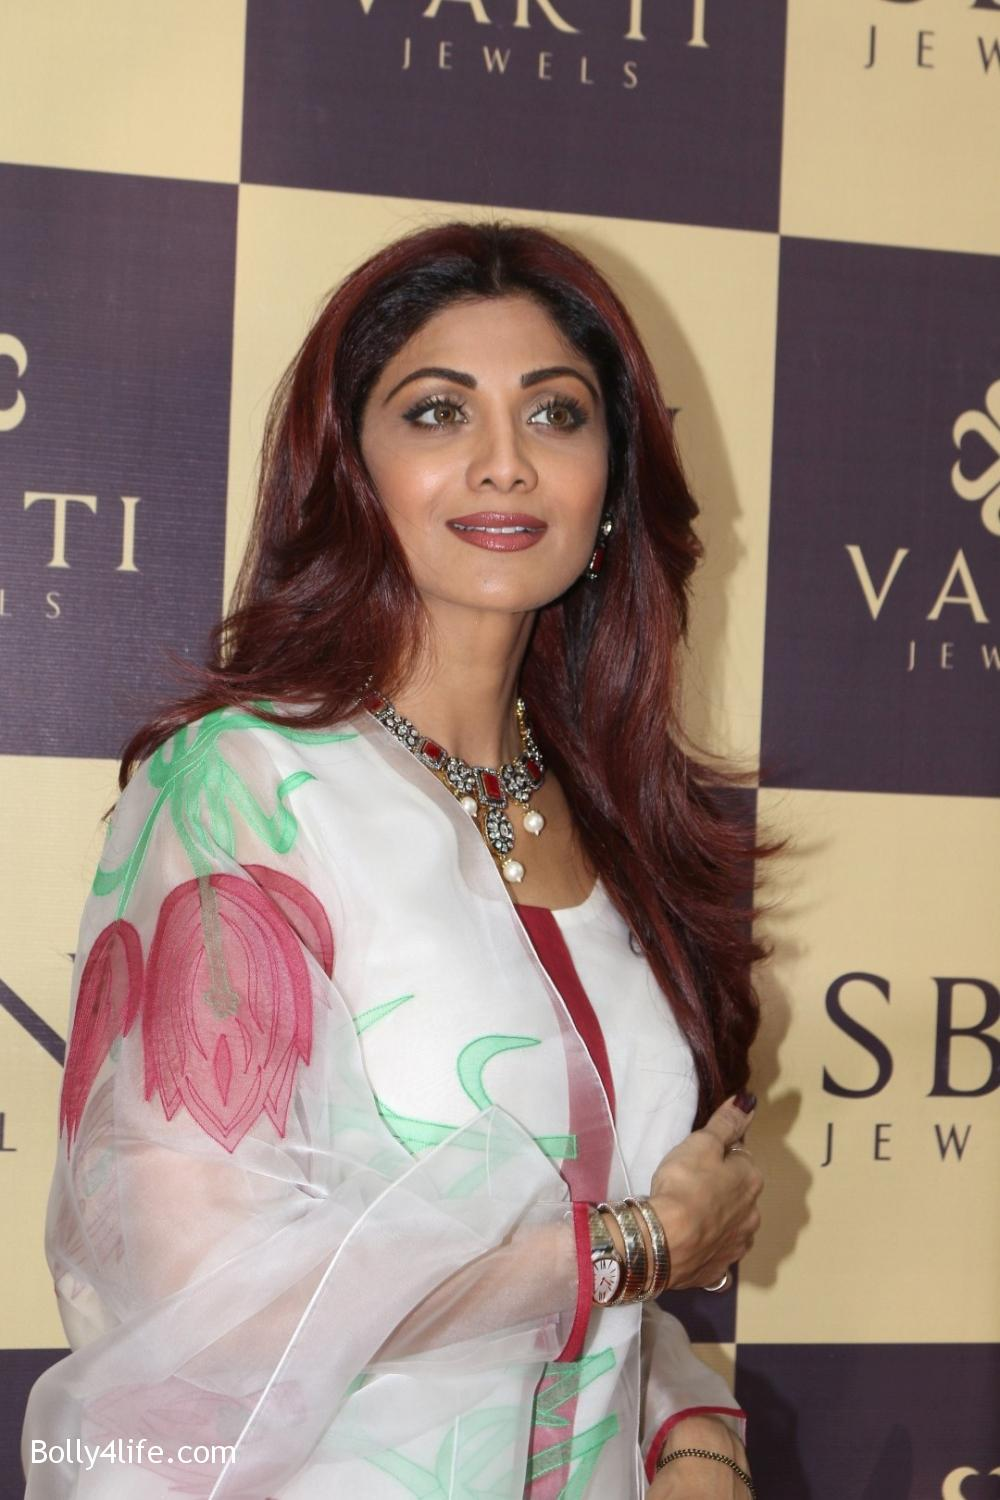 Shilpa-Shetty-inaugurates-jewellery-showroom-of-Varti-Jewells-4.jpg